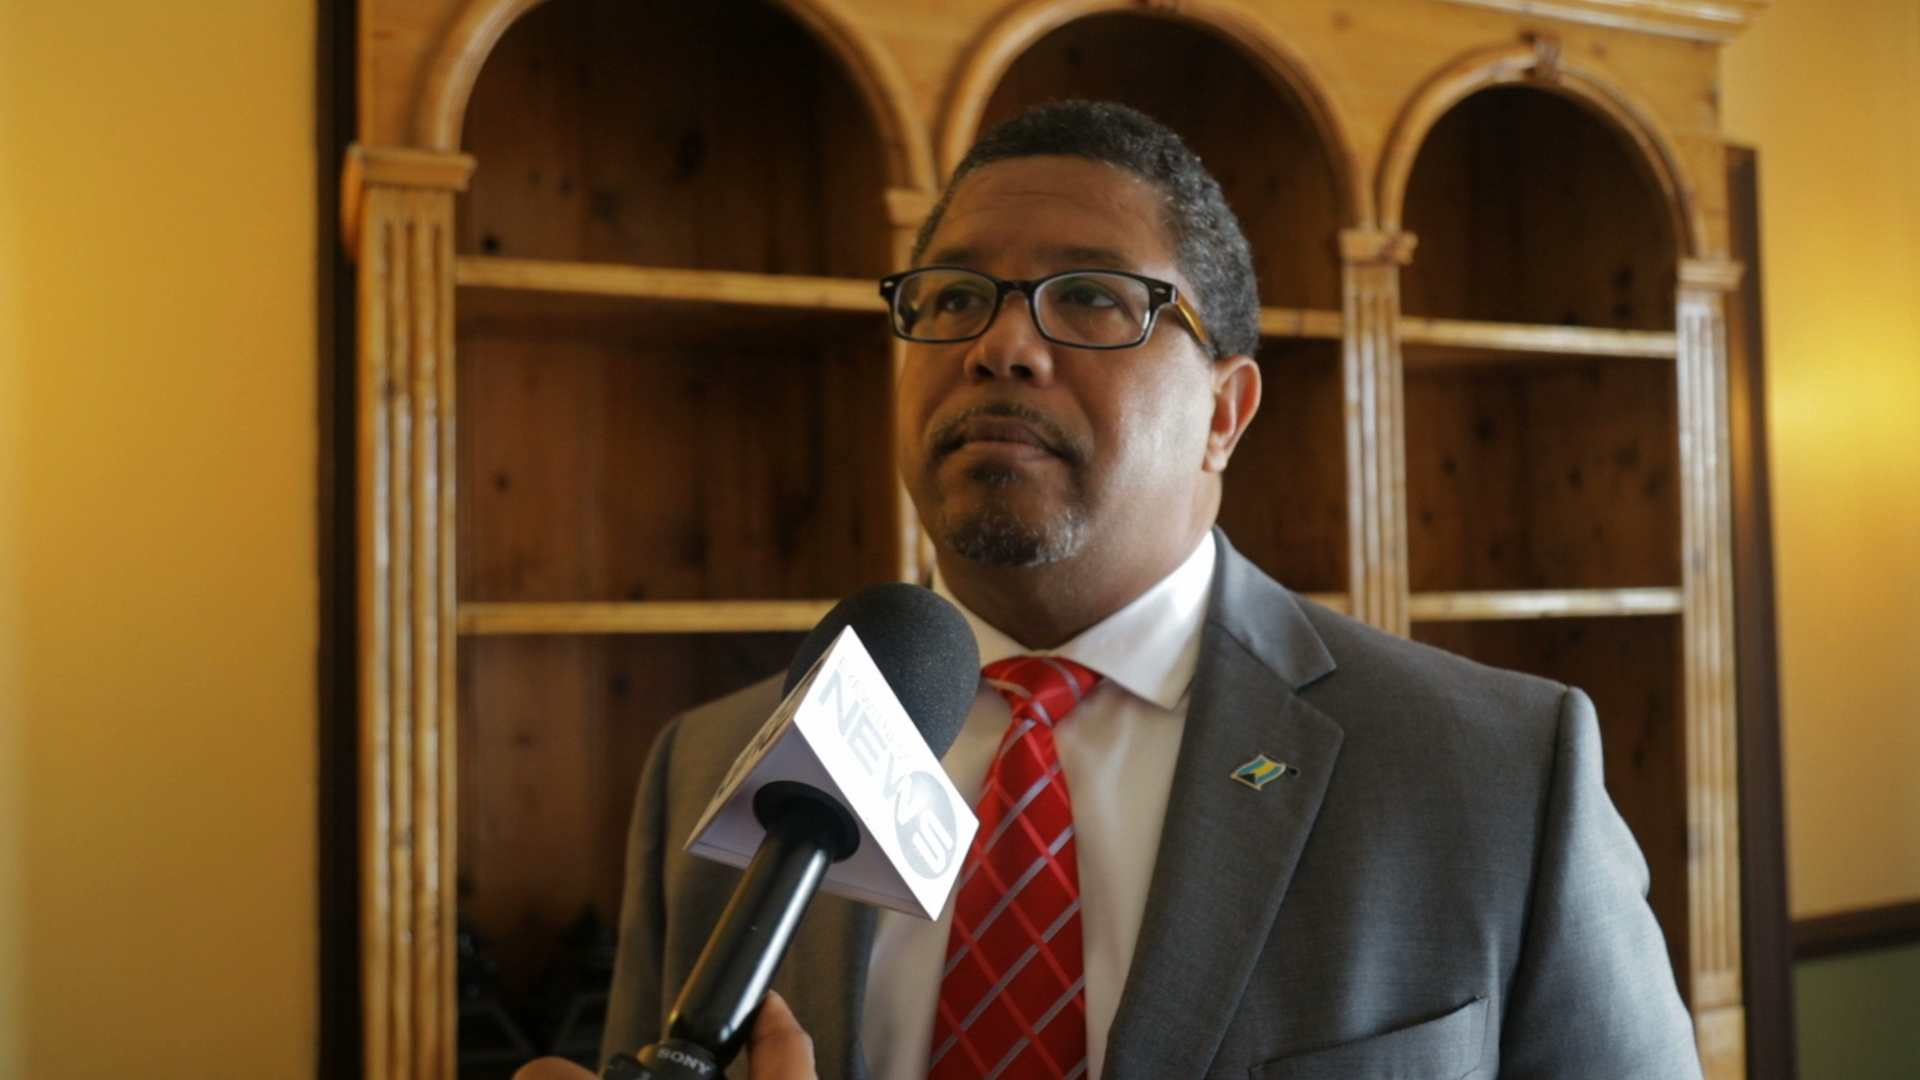 Govt. still committed to Ragged Island